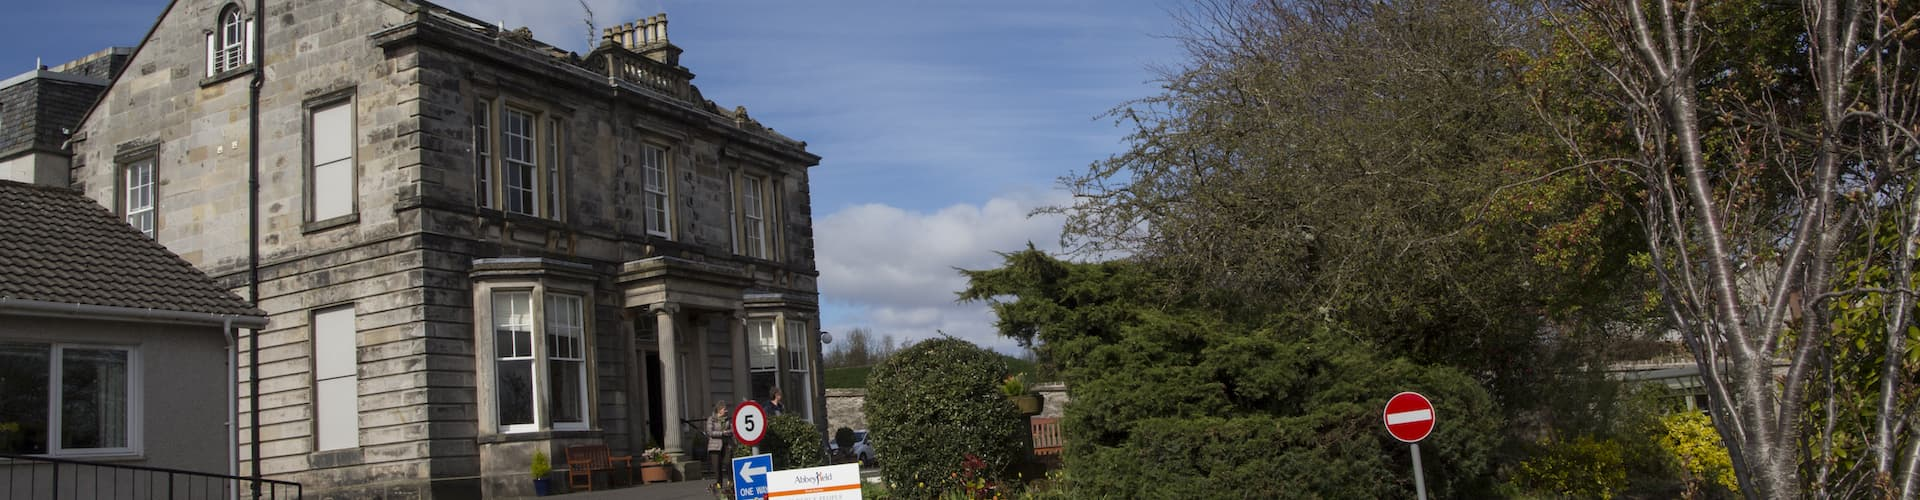 Viewlands house Perth Scotland